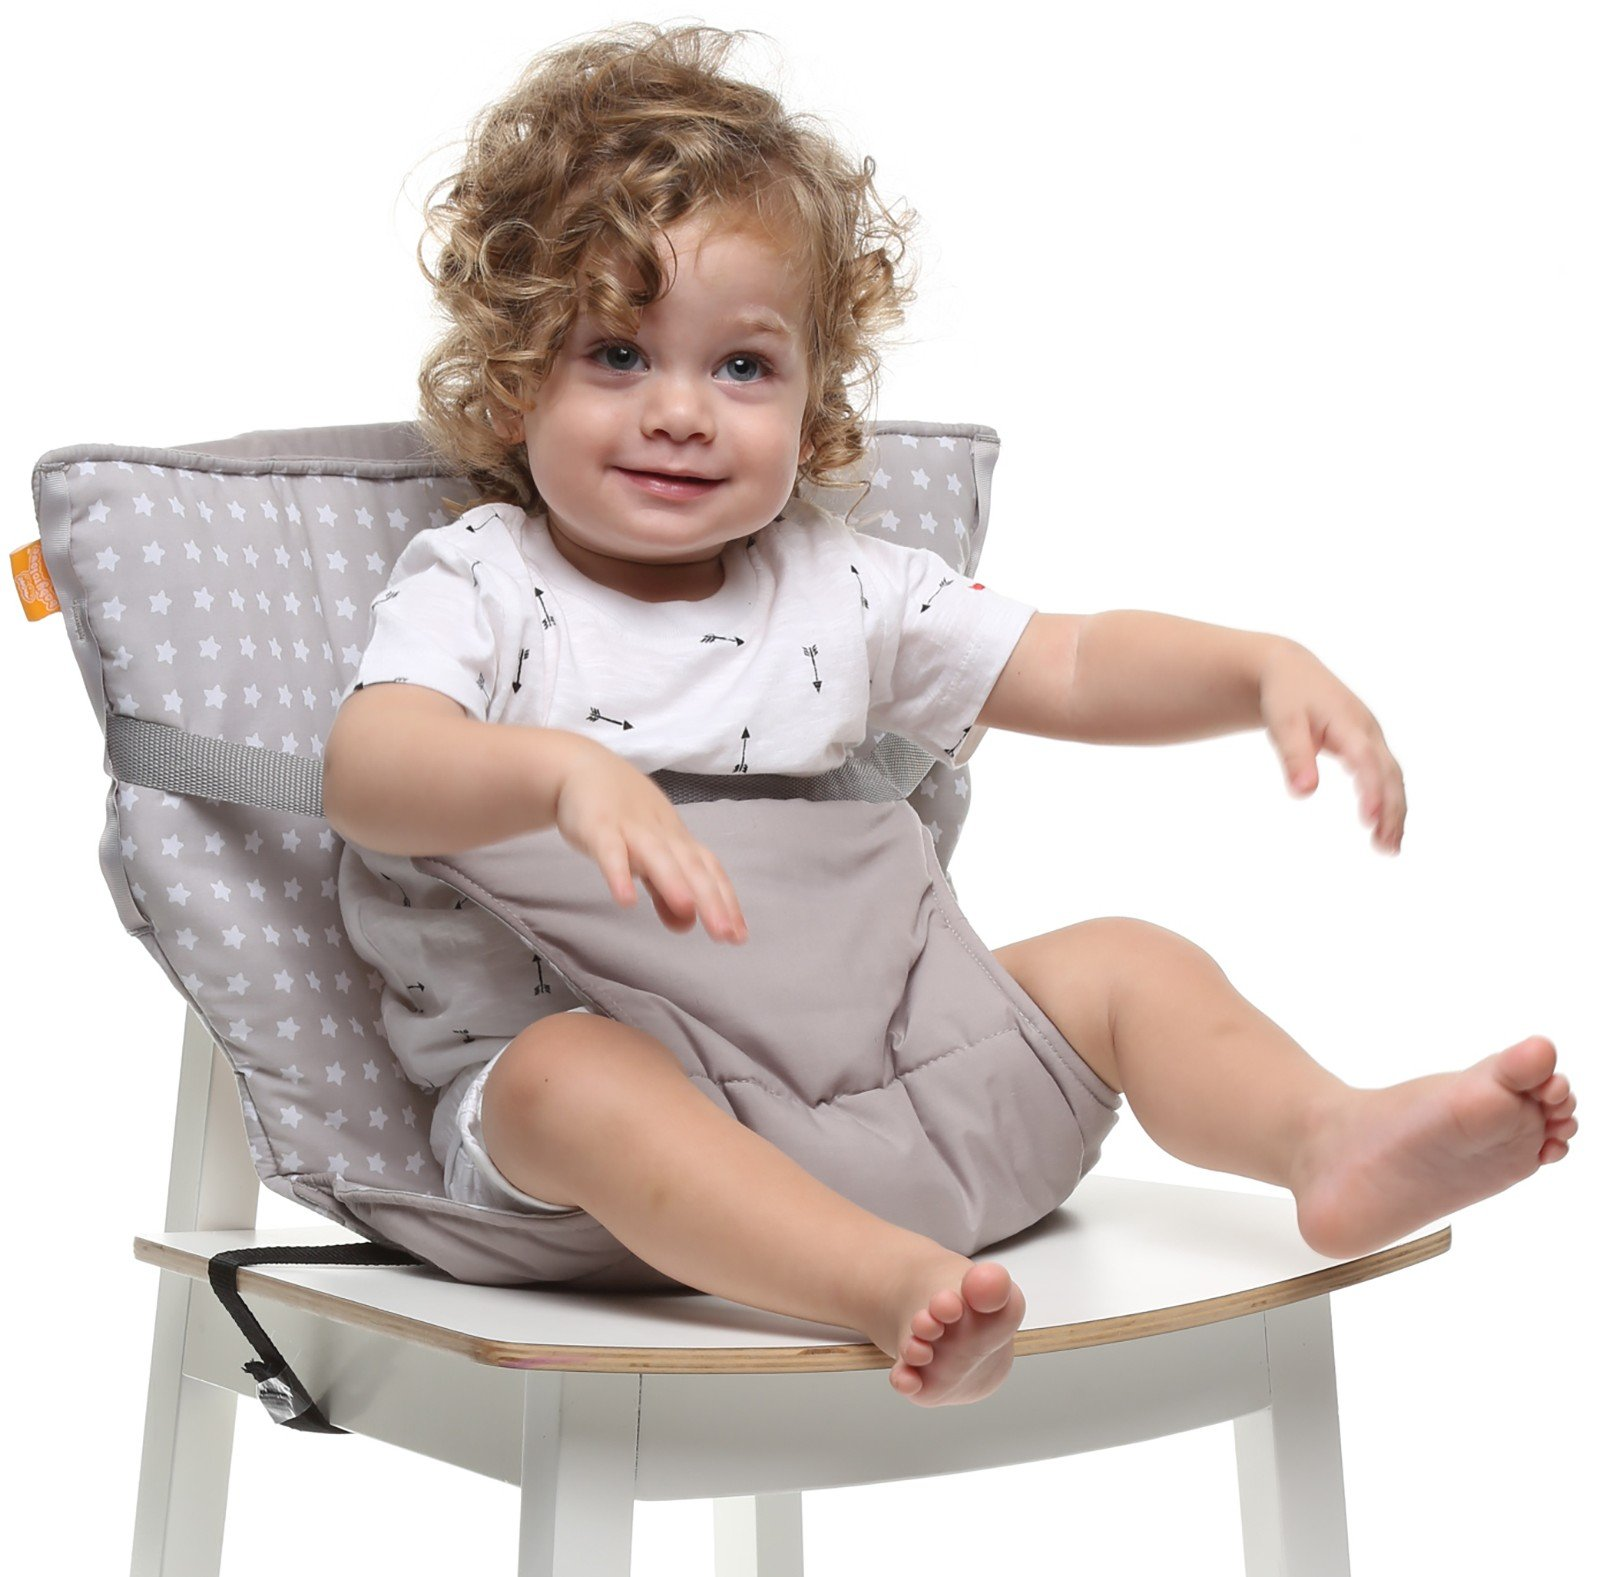 Baby-to-Love Pocket Chair, Portable Feeding Chair Cover Infant & Toddler (White Stars)